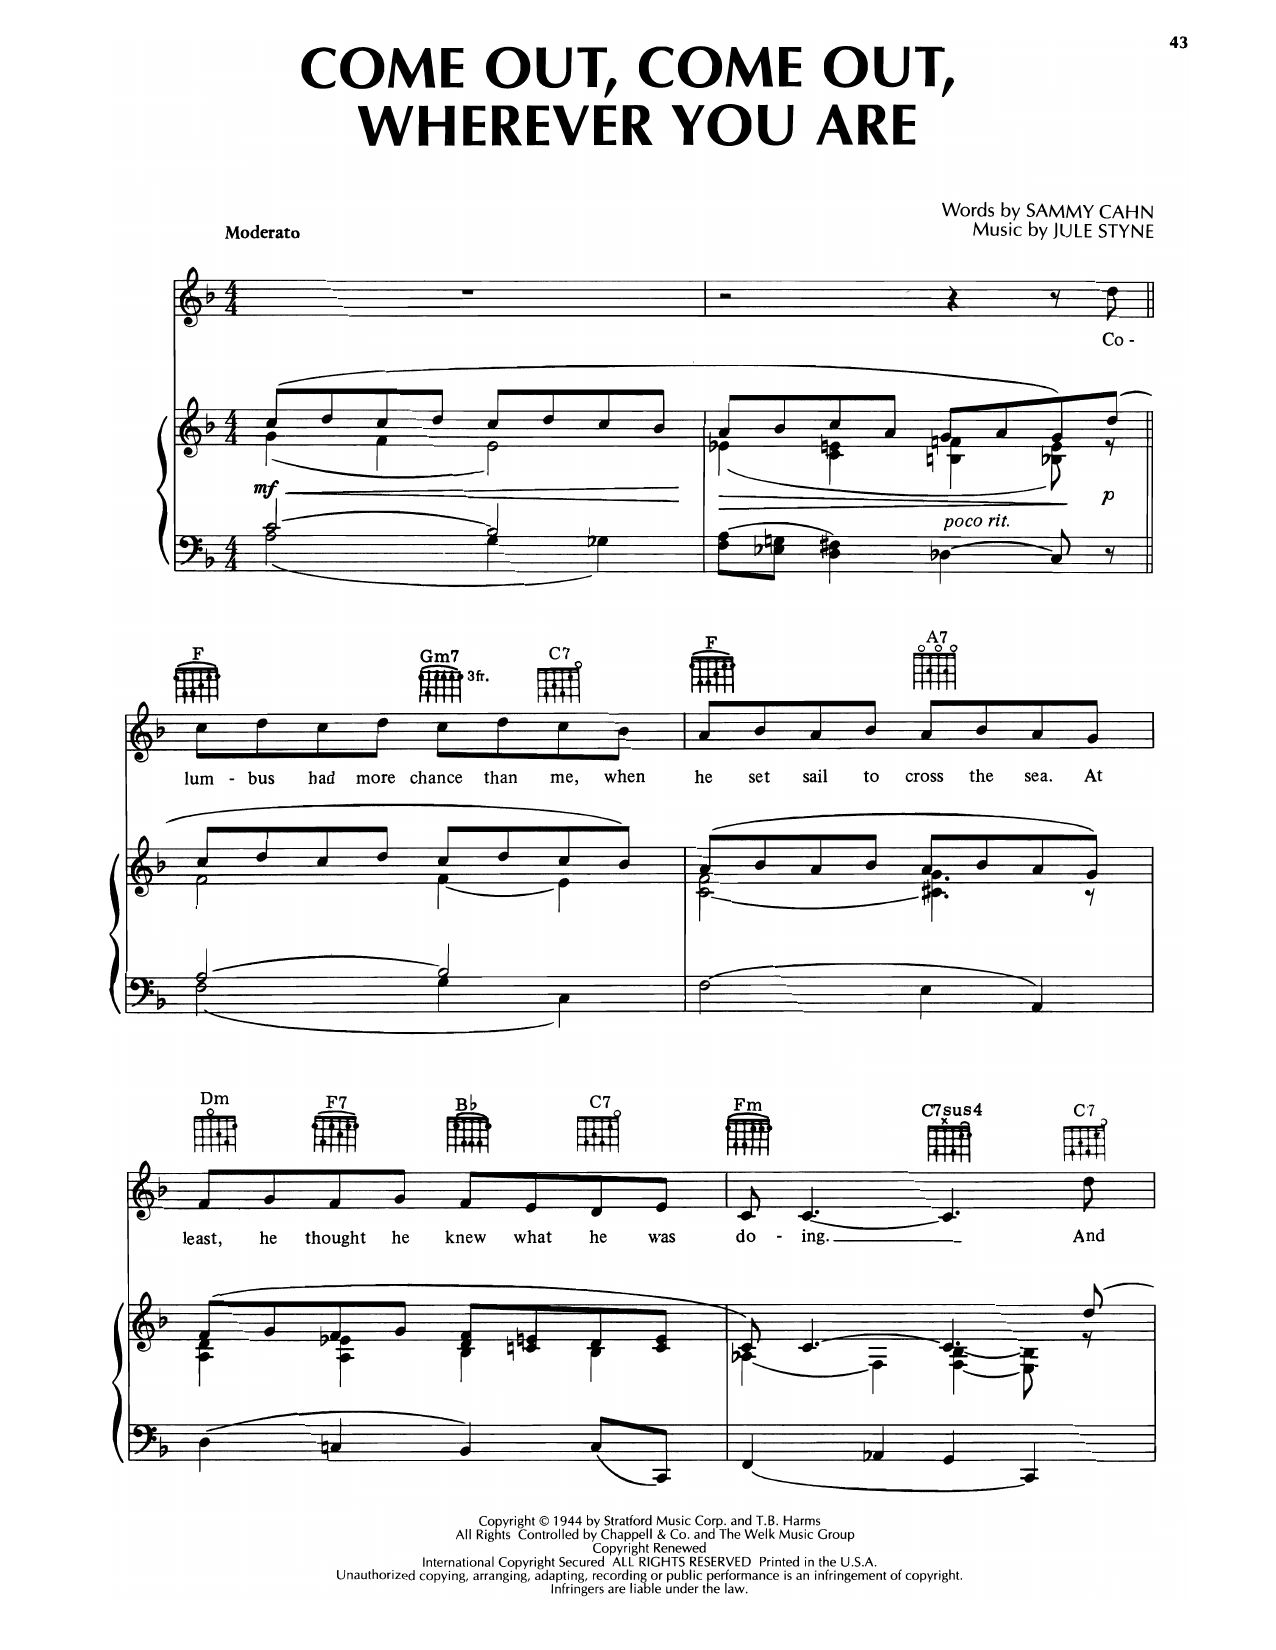 Sammy Cahn & Jule Styne Come Out, Come Out, Wherever You Are sheet music notes printable PDF score